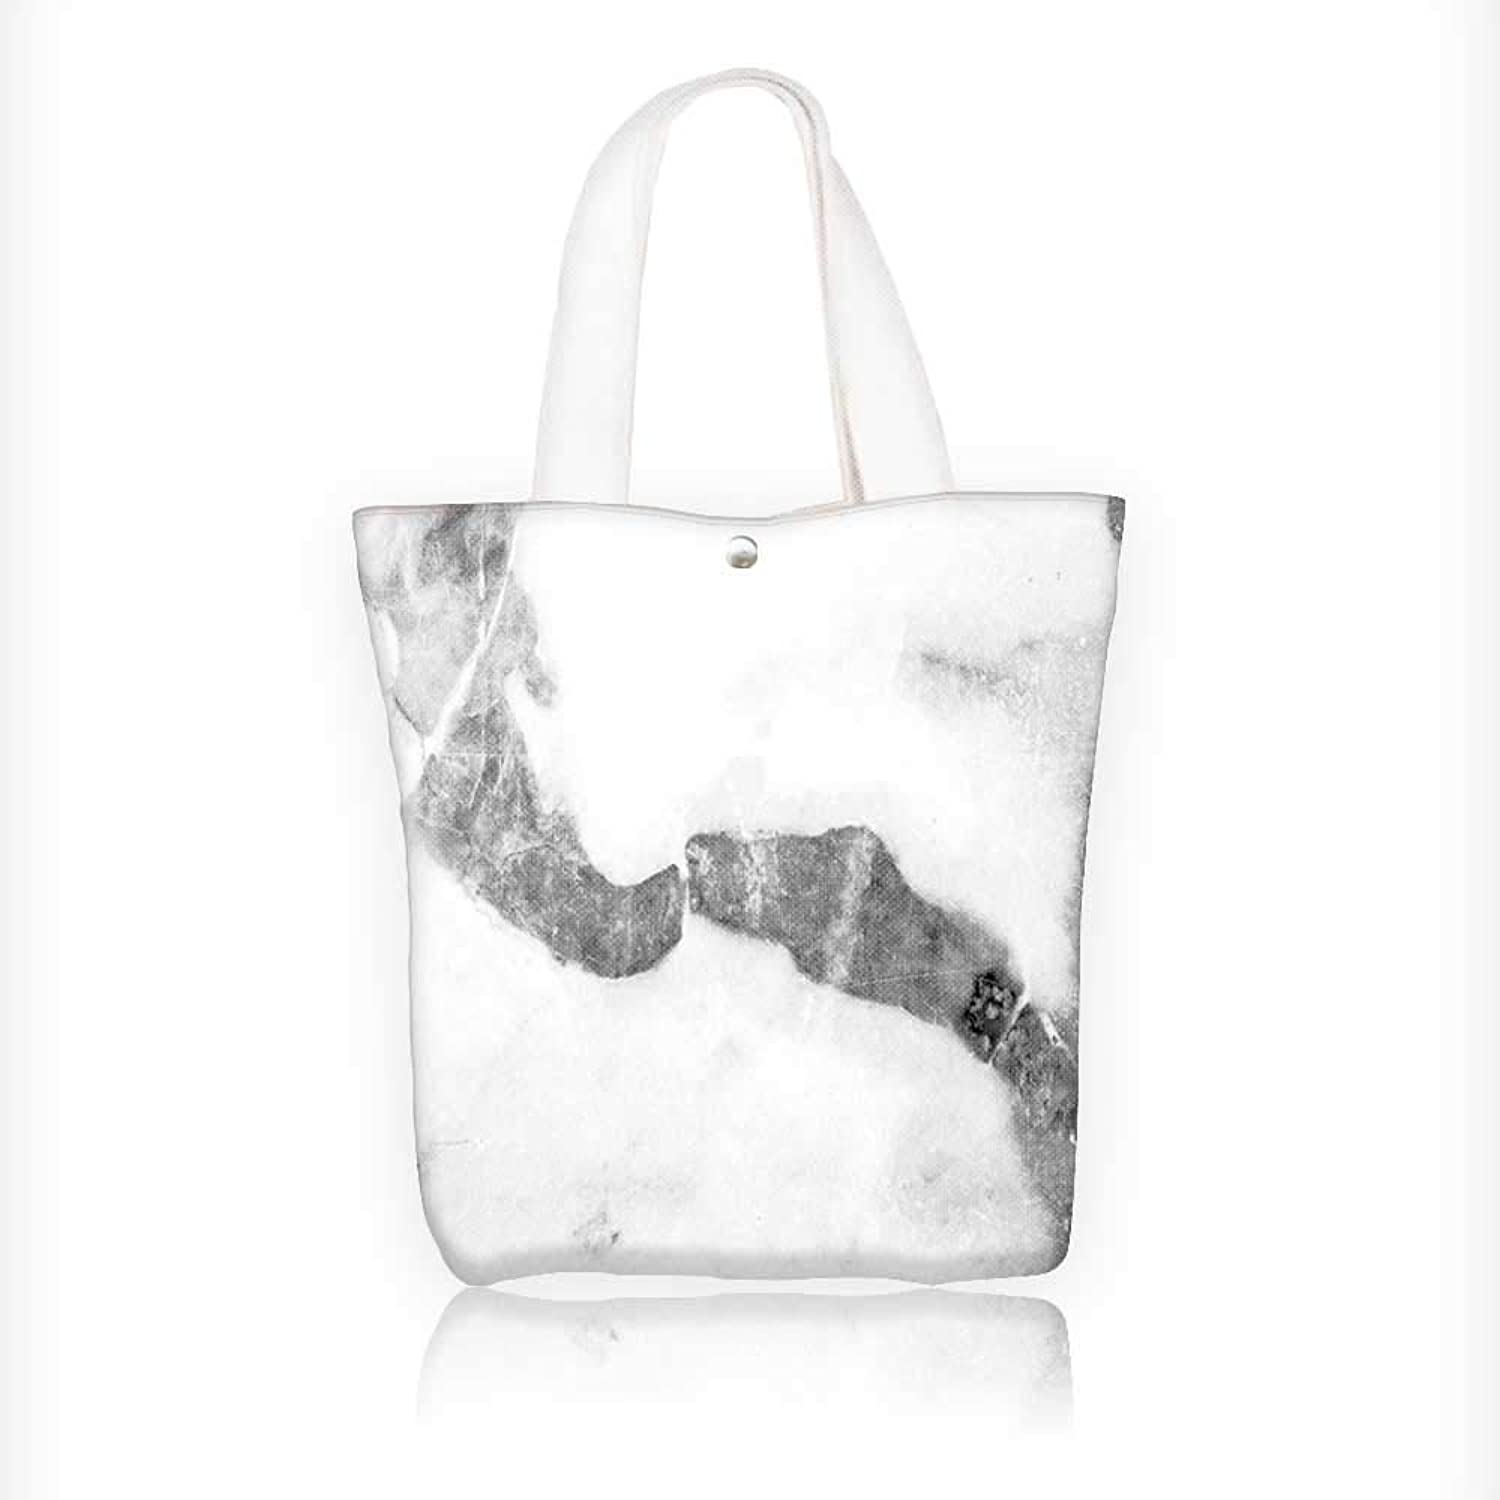 Women's Canvas Tote Bag, Marble Texture, White Marble Background Ladies TopHandle Handbags, Work School Shoulder Bag W16.5xH14xD7 INCH